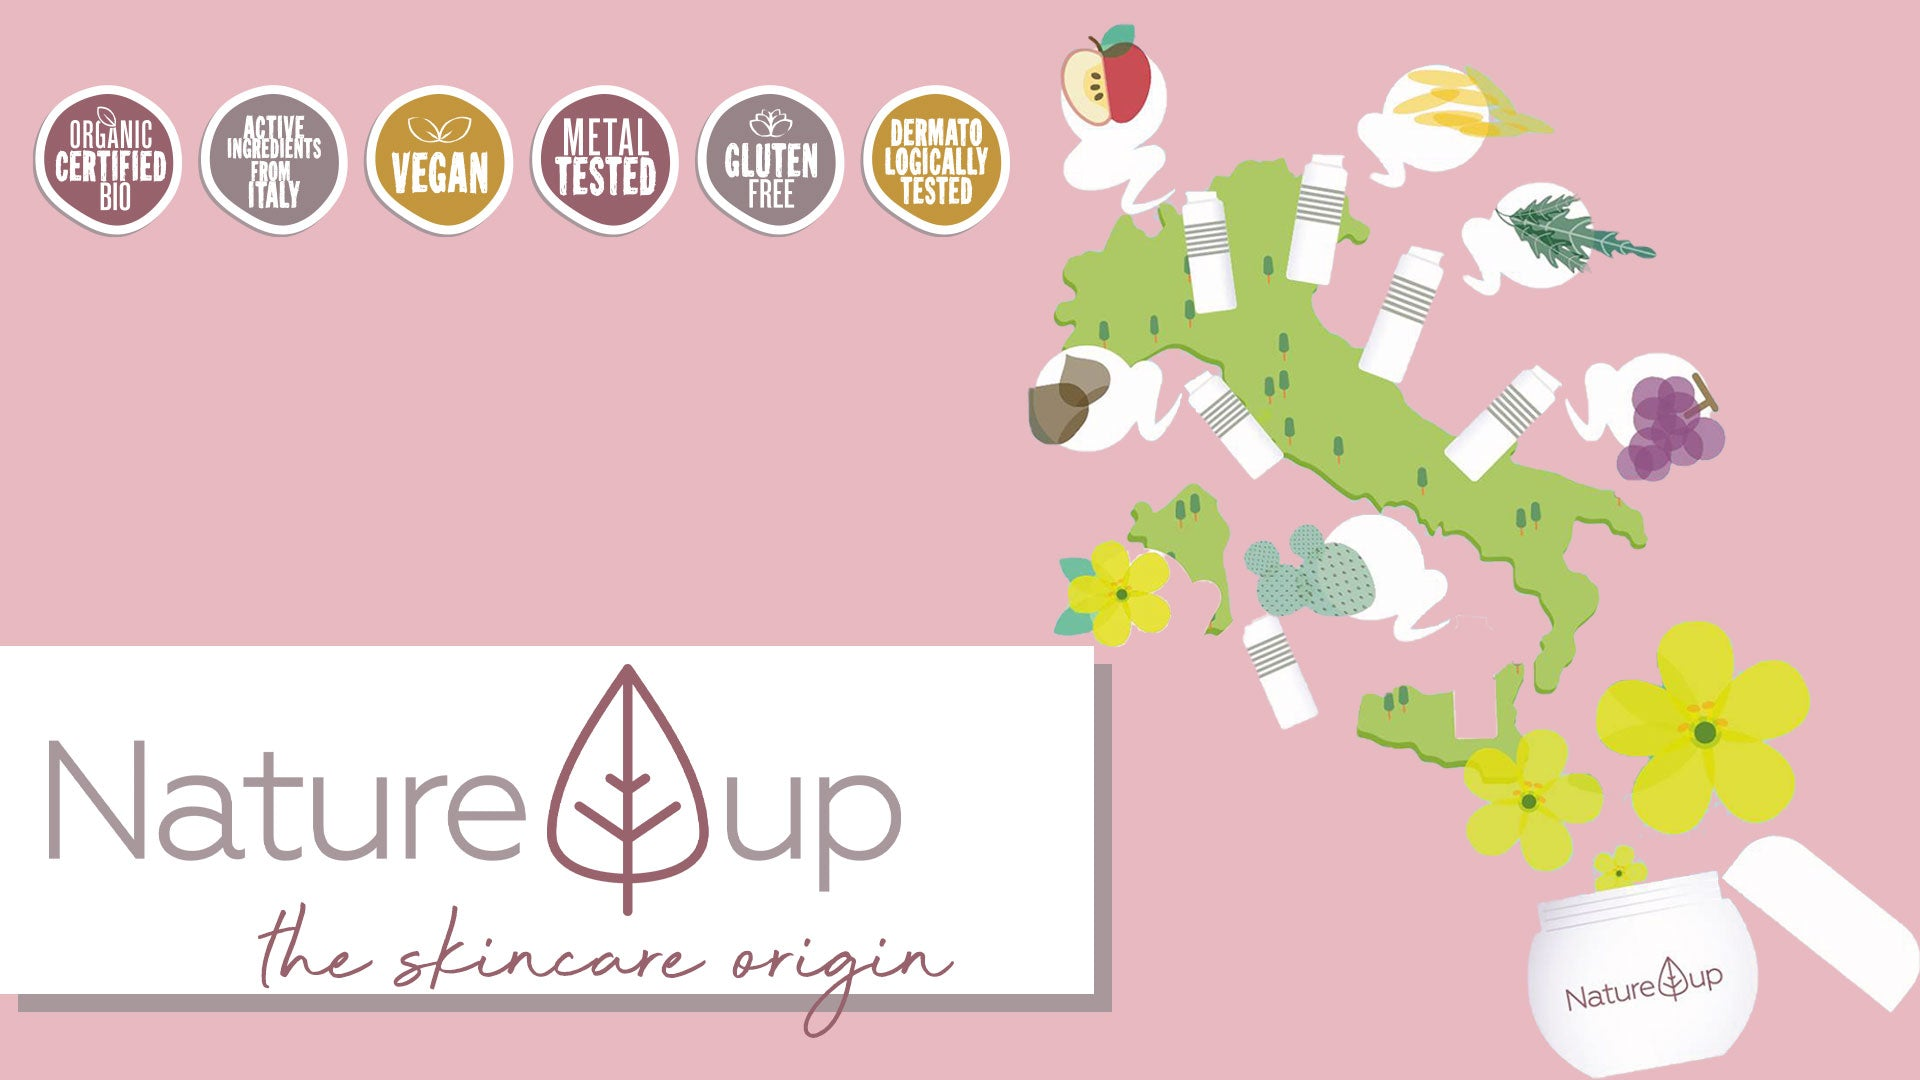 Nature Up Bema Certified Organic Sustainable Clean Beauty Green Eco Friendly Beauty Advanced Technology Gluten Free Dermatologically Tested Natural Skin Care Singapore